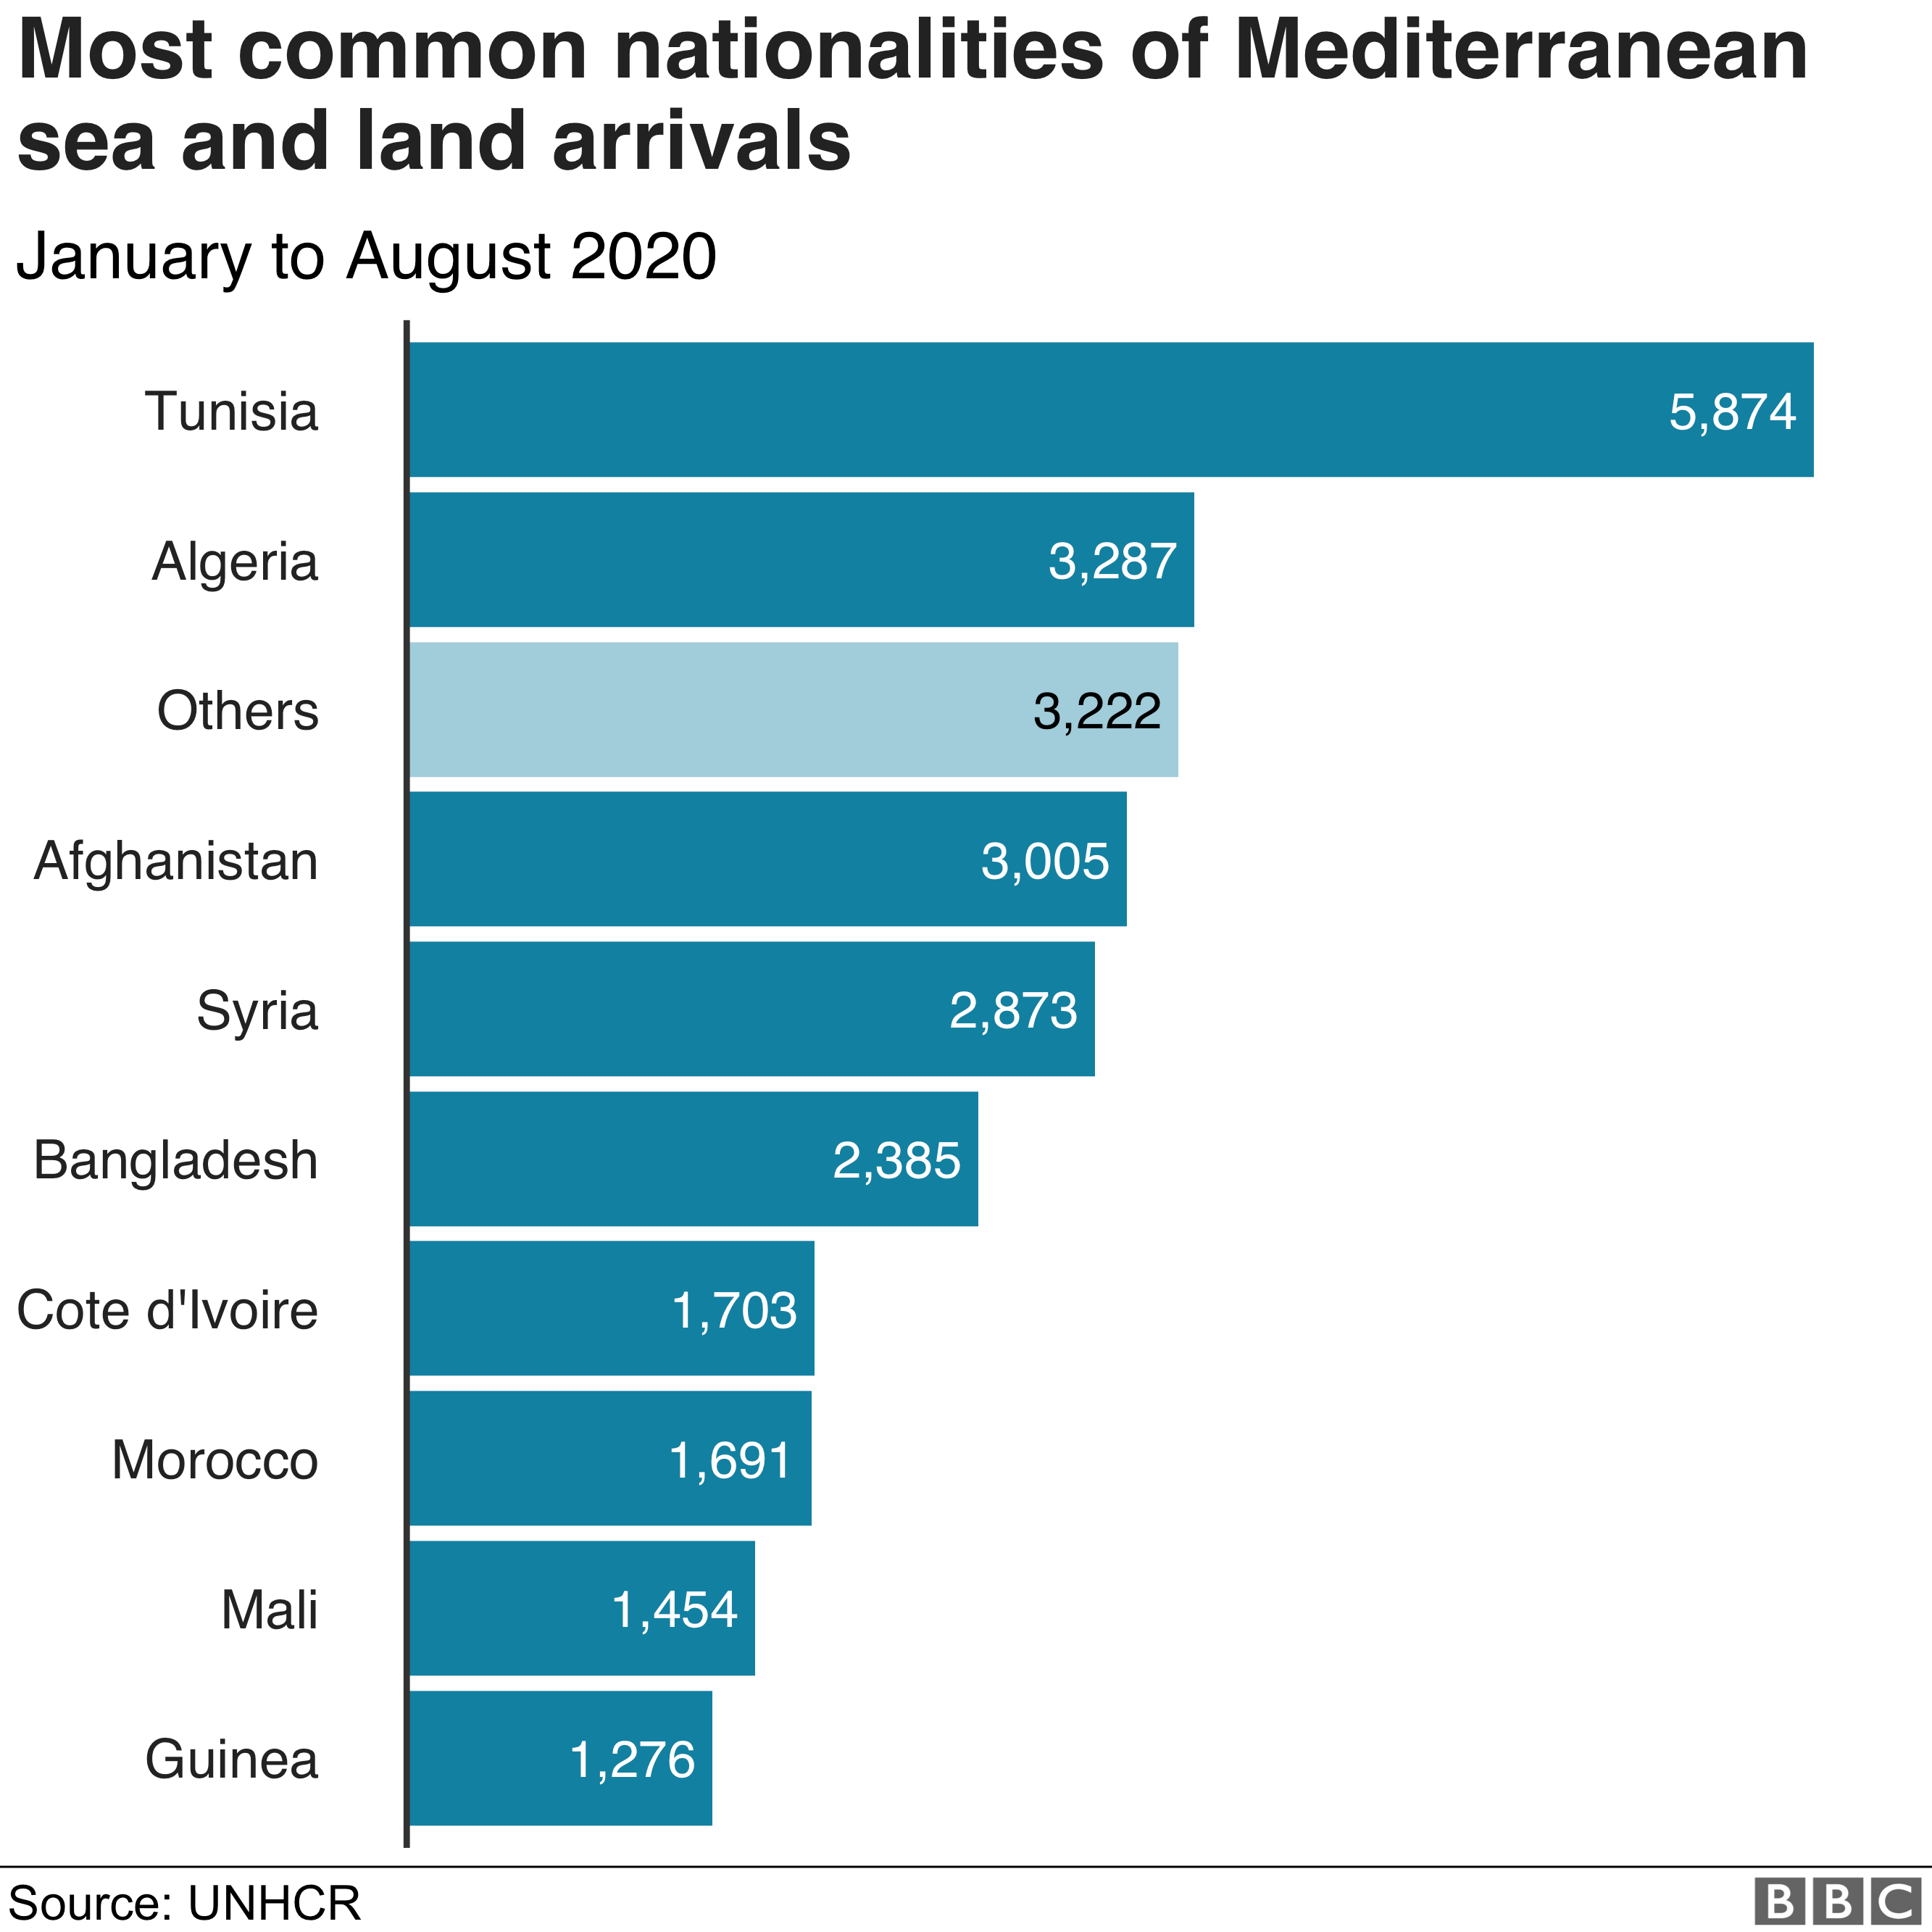 Chart showing the most common nationalities of Mediterranean land and sea arrivals.